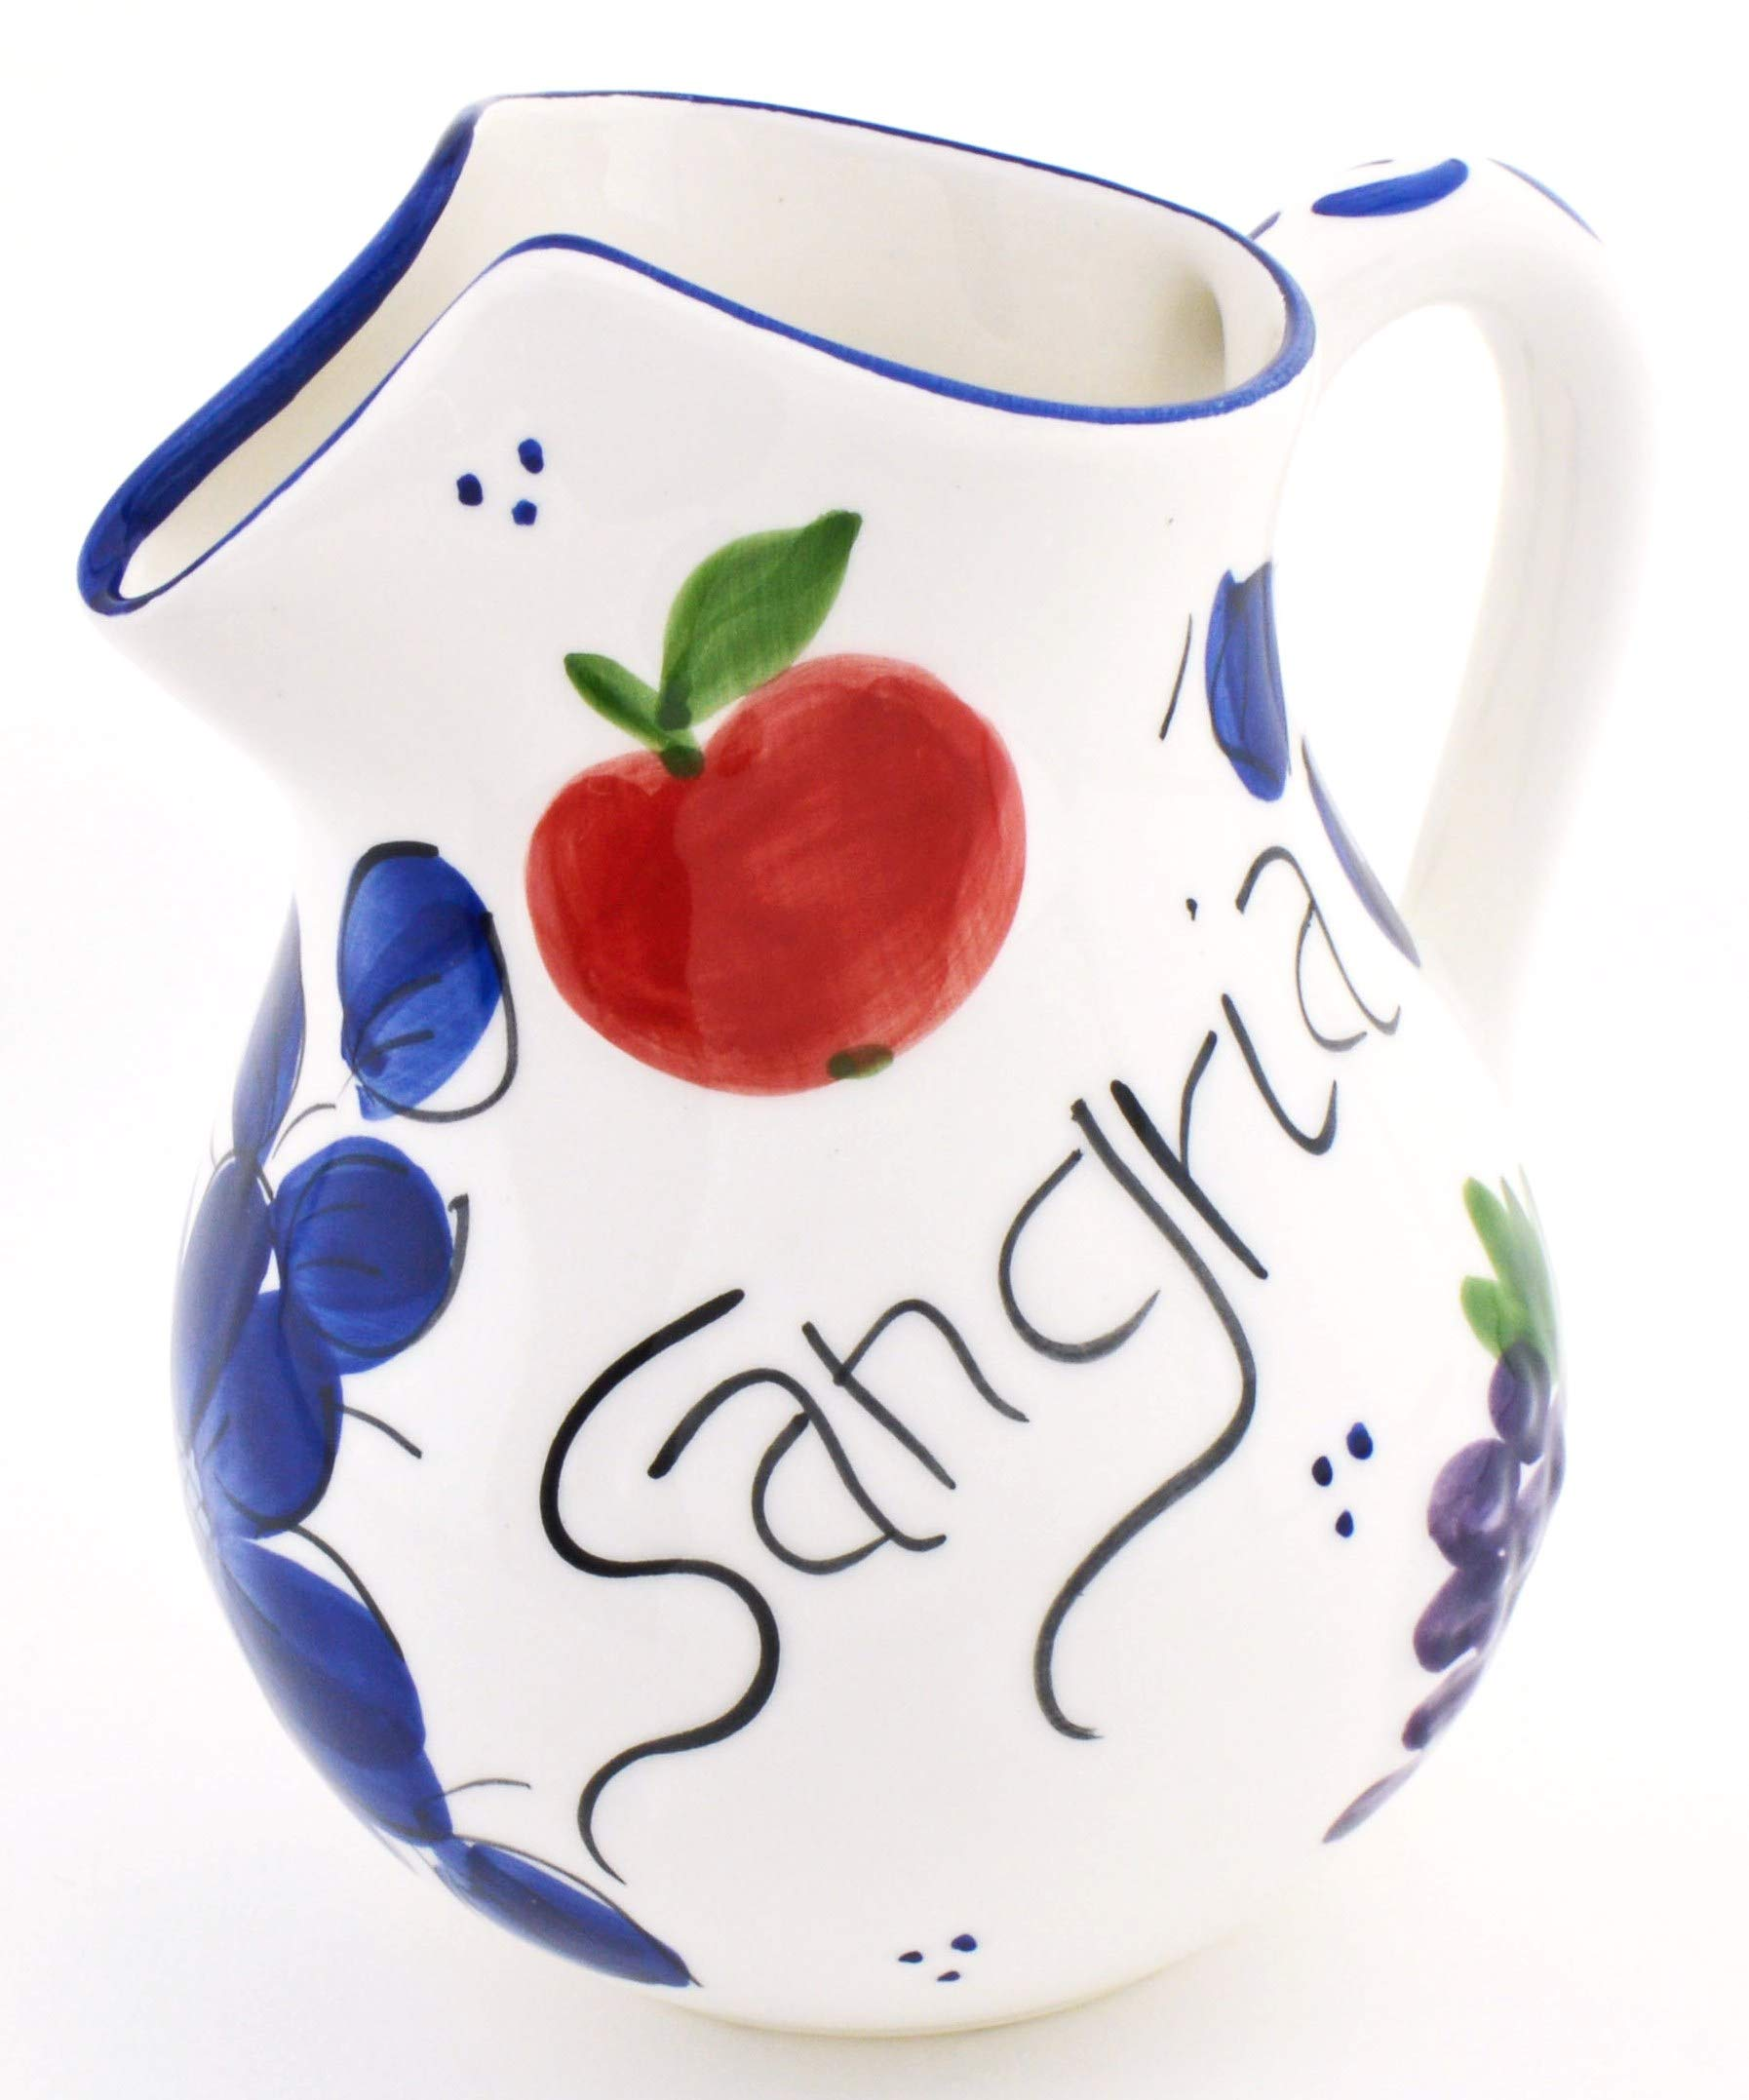 ART ESCUDELLERS Ceramic JUG Sangria Handmade and Handpainted in Classic Blue Decoration. 7,87'' x 6,30'' x 9,06''